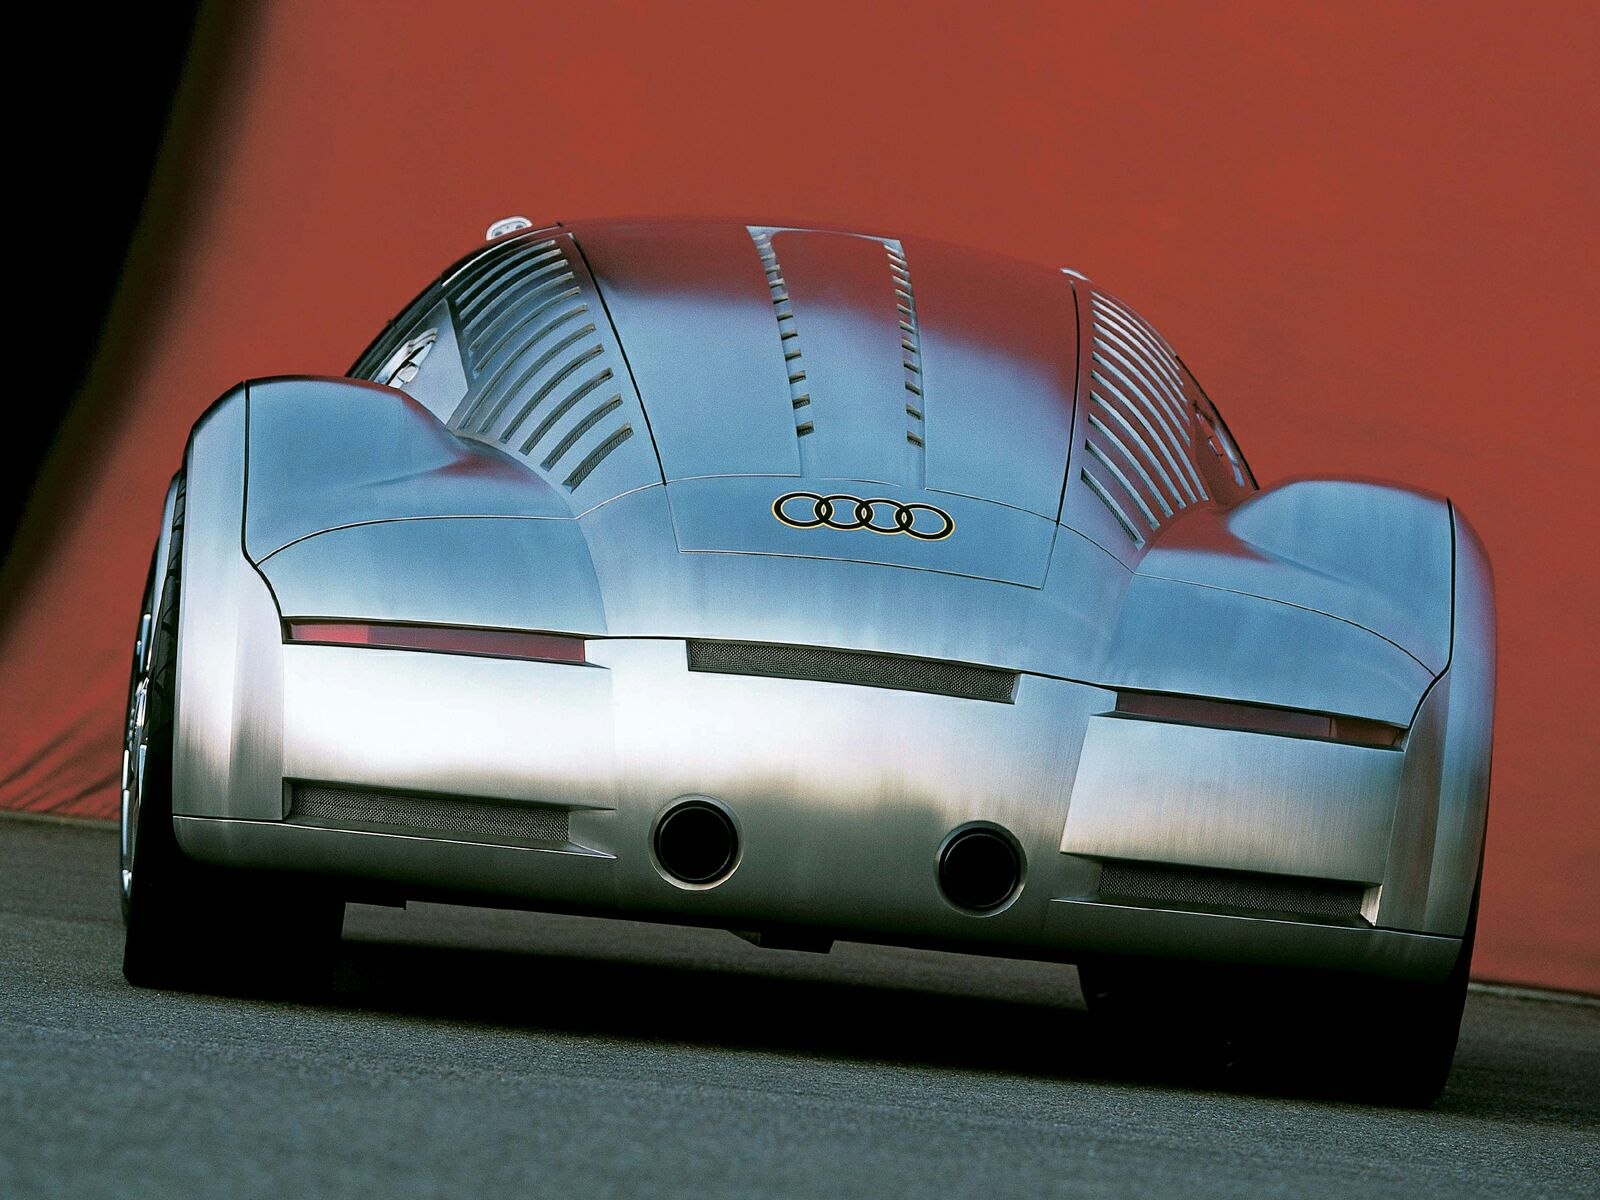 Audi rosemeyer photo - 2